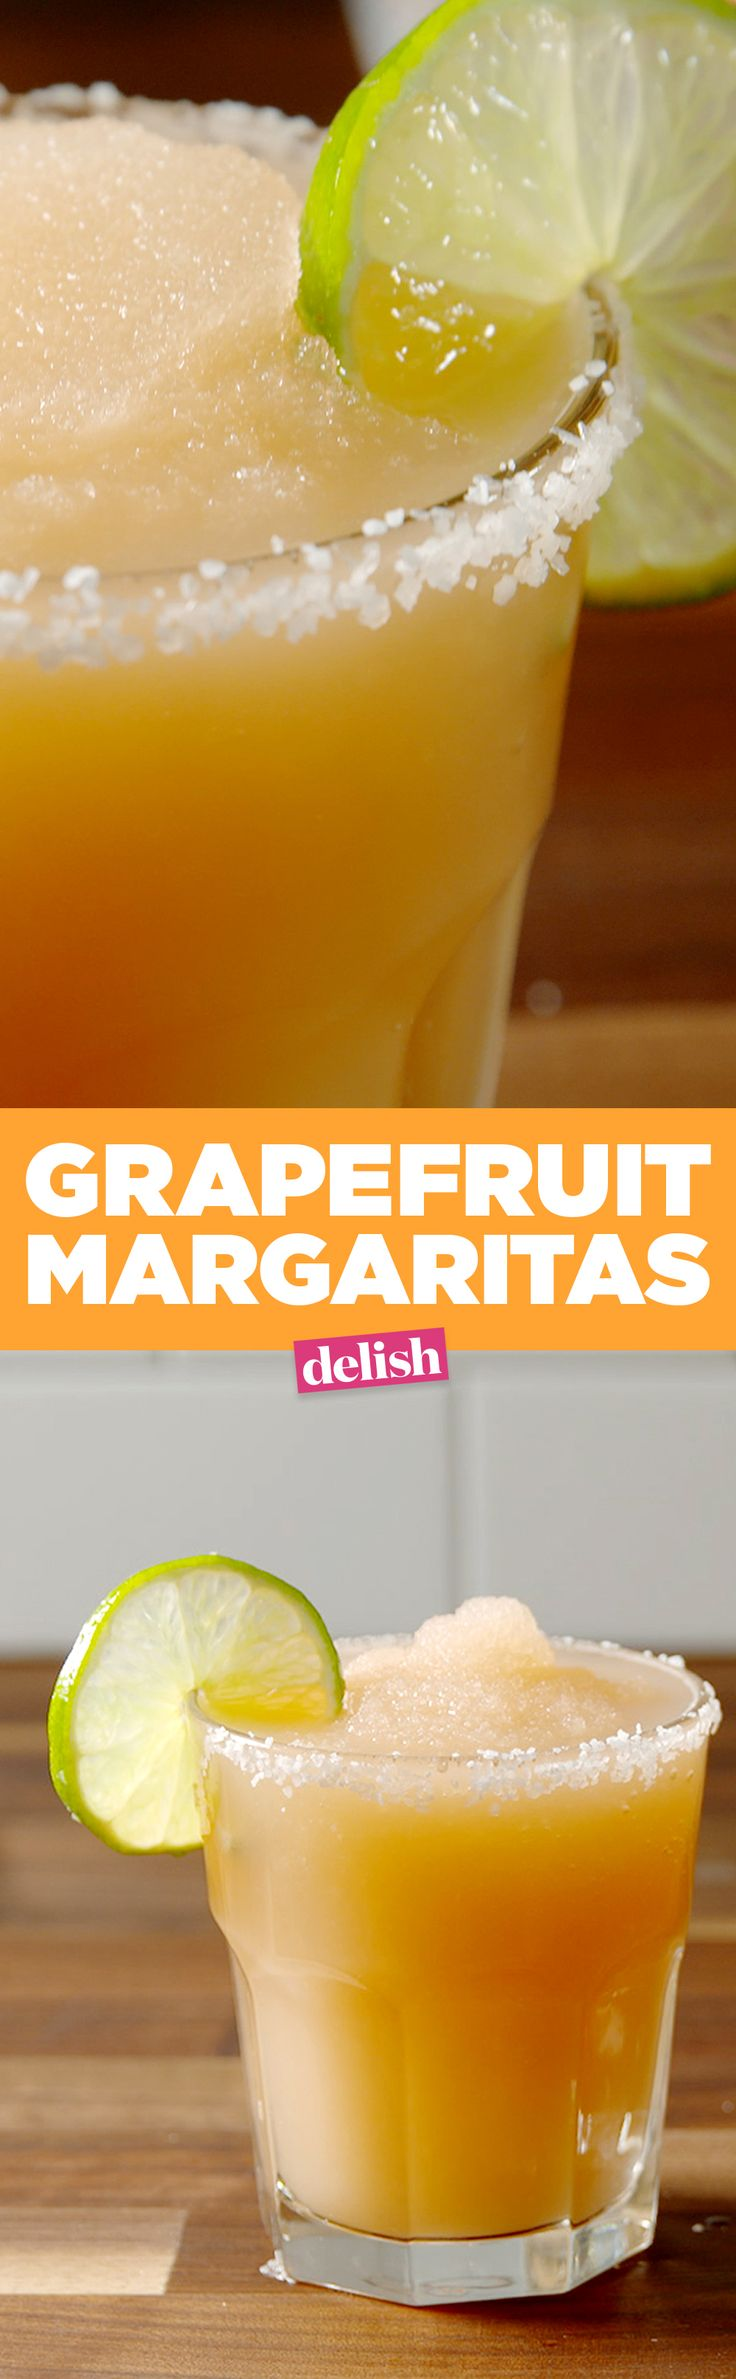 Grapefruit Margaritas tastes like a beach vacay you desperately need right now. Get the recipe from Delish.com.